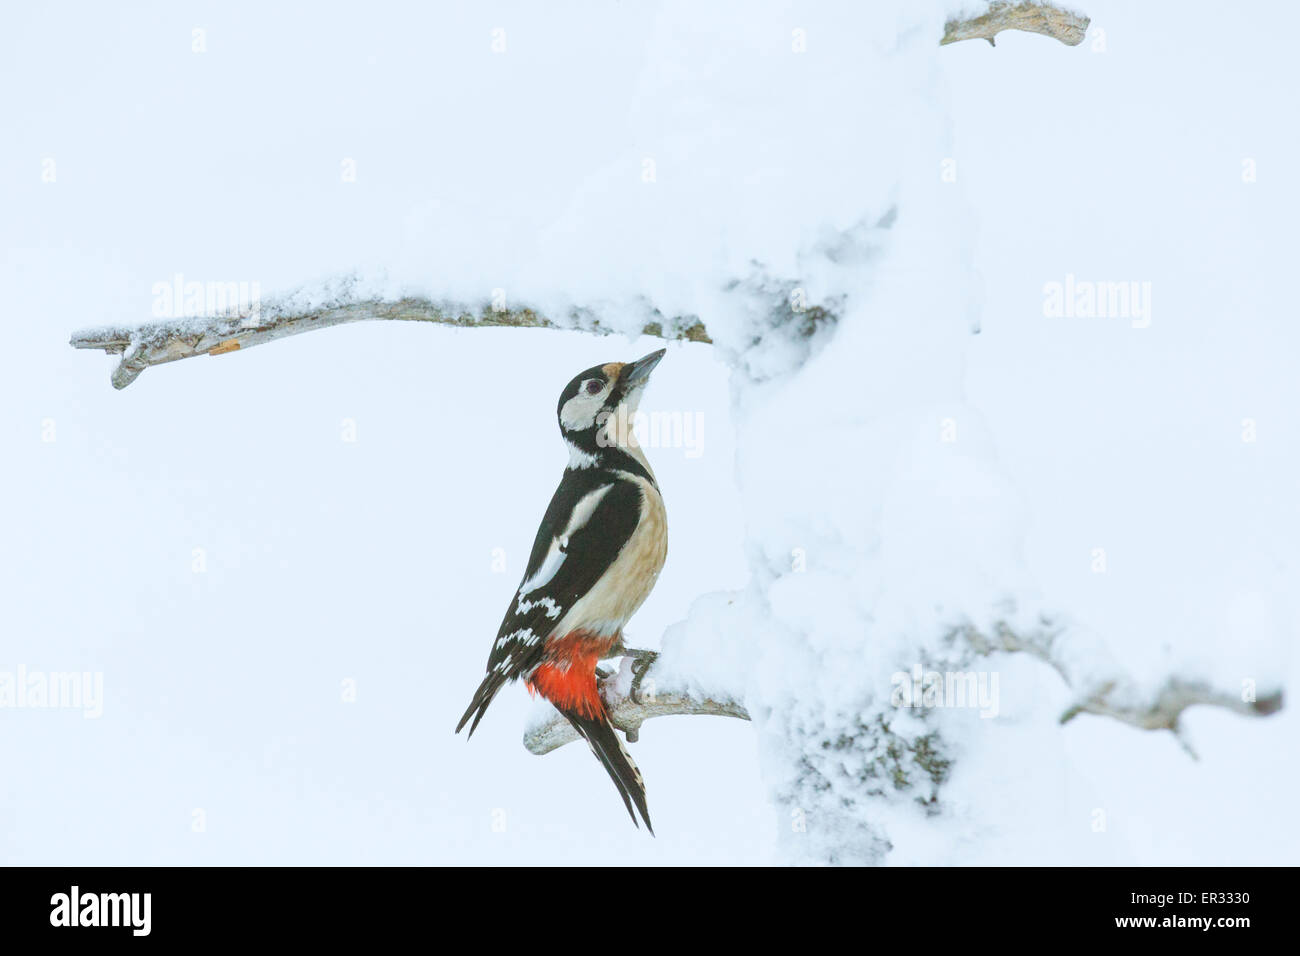 great spotted woodpecker, Dendrocopos major in snowy tree in Gällivare Swedish Lapland - Stock Image